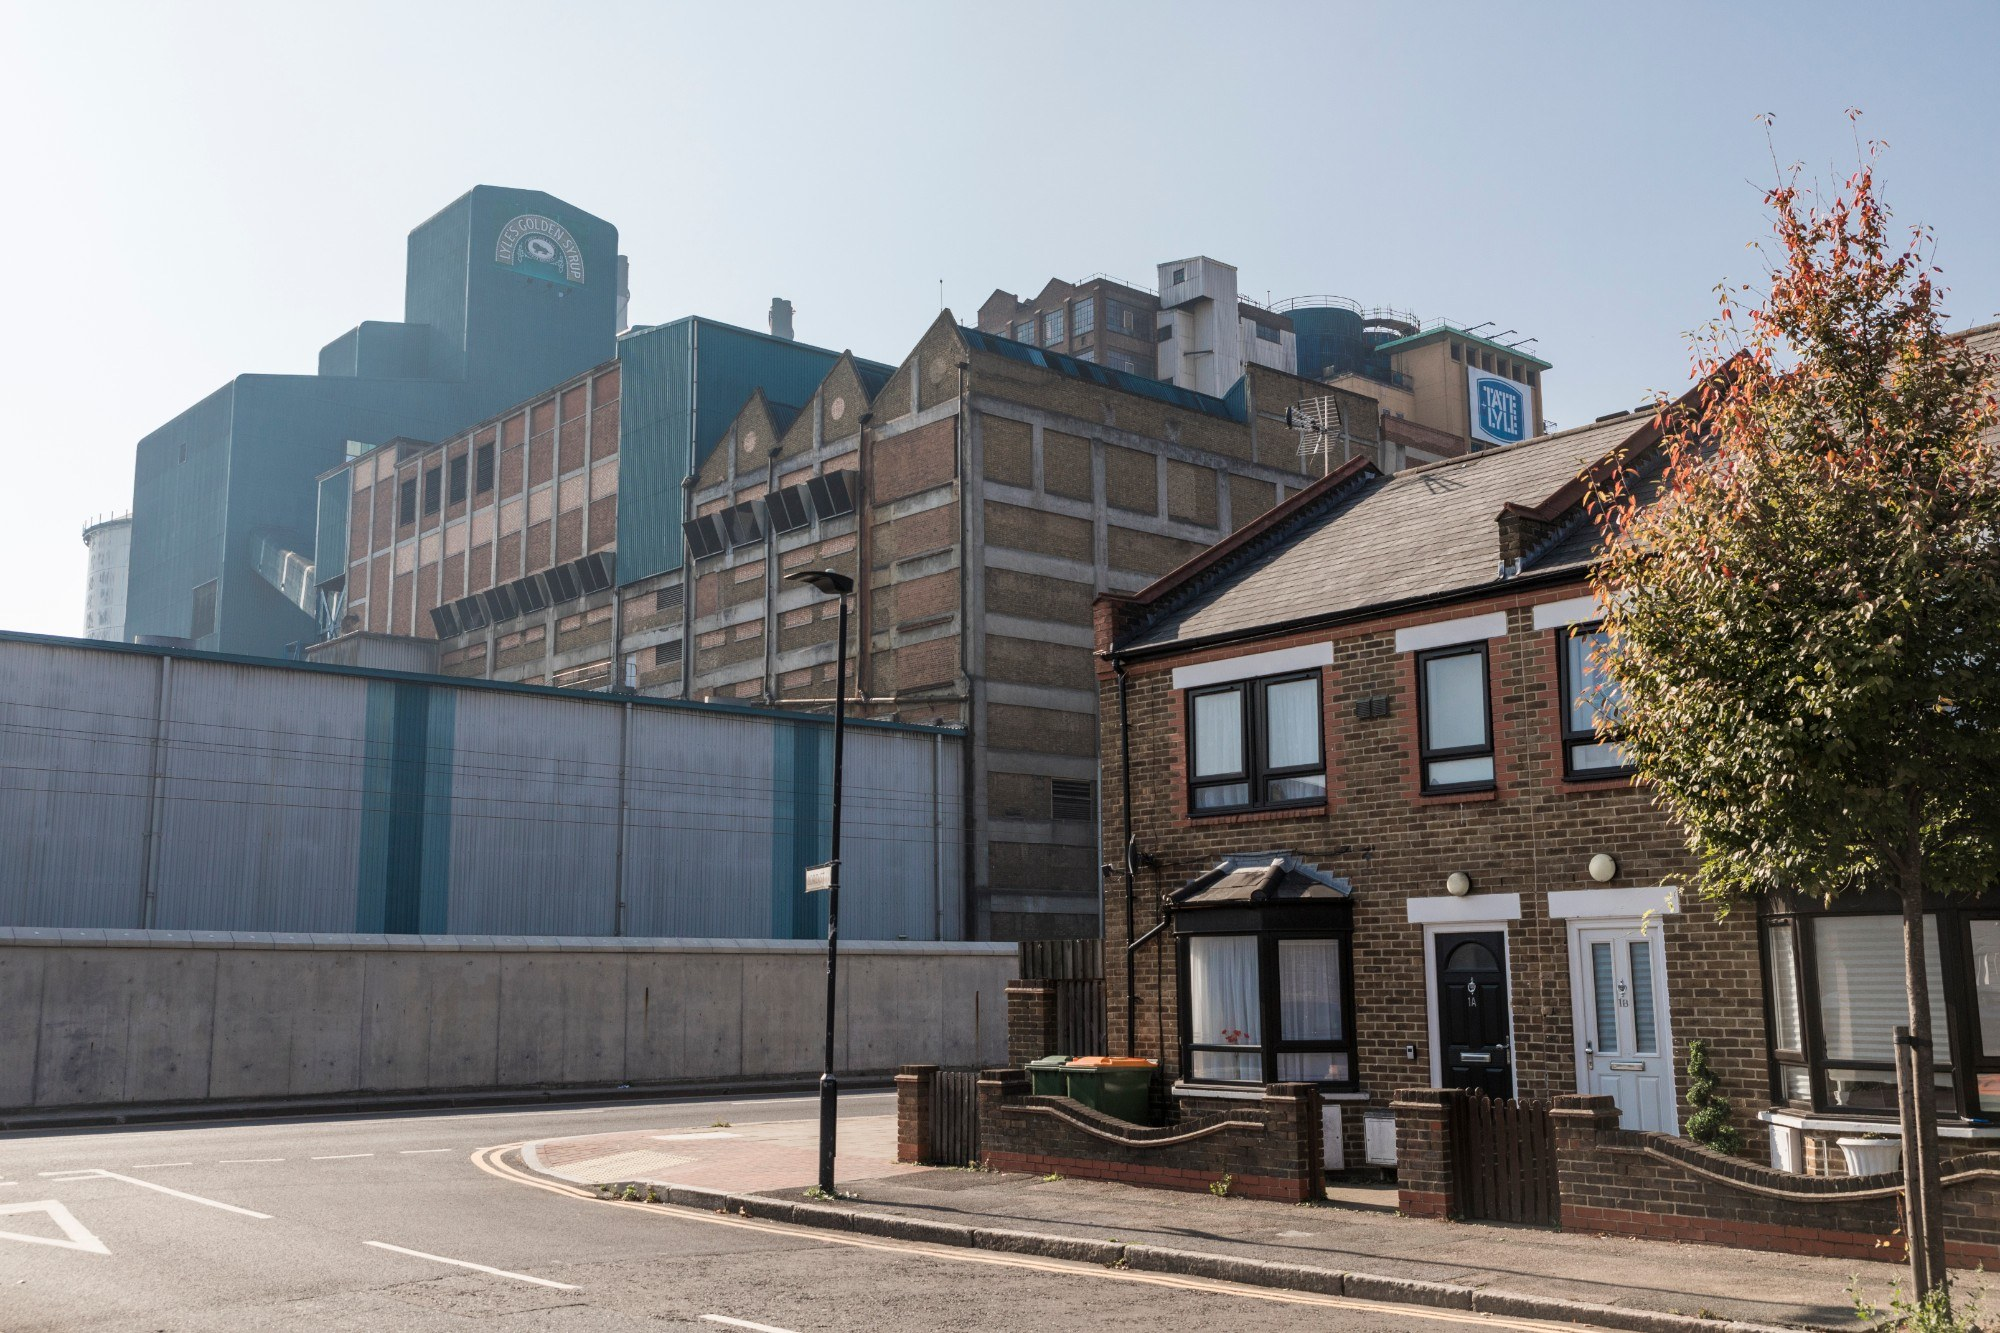 Tate & Lyle building exterior from the street